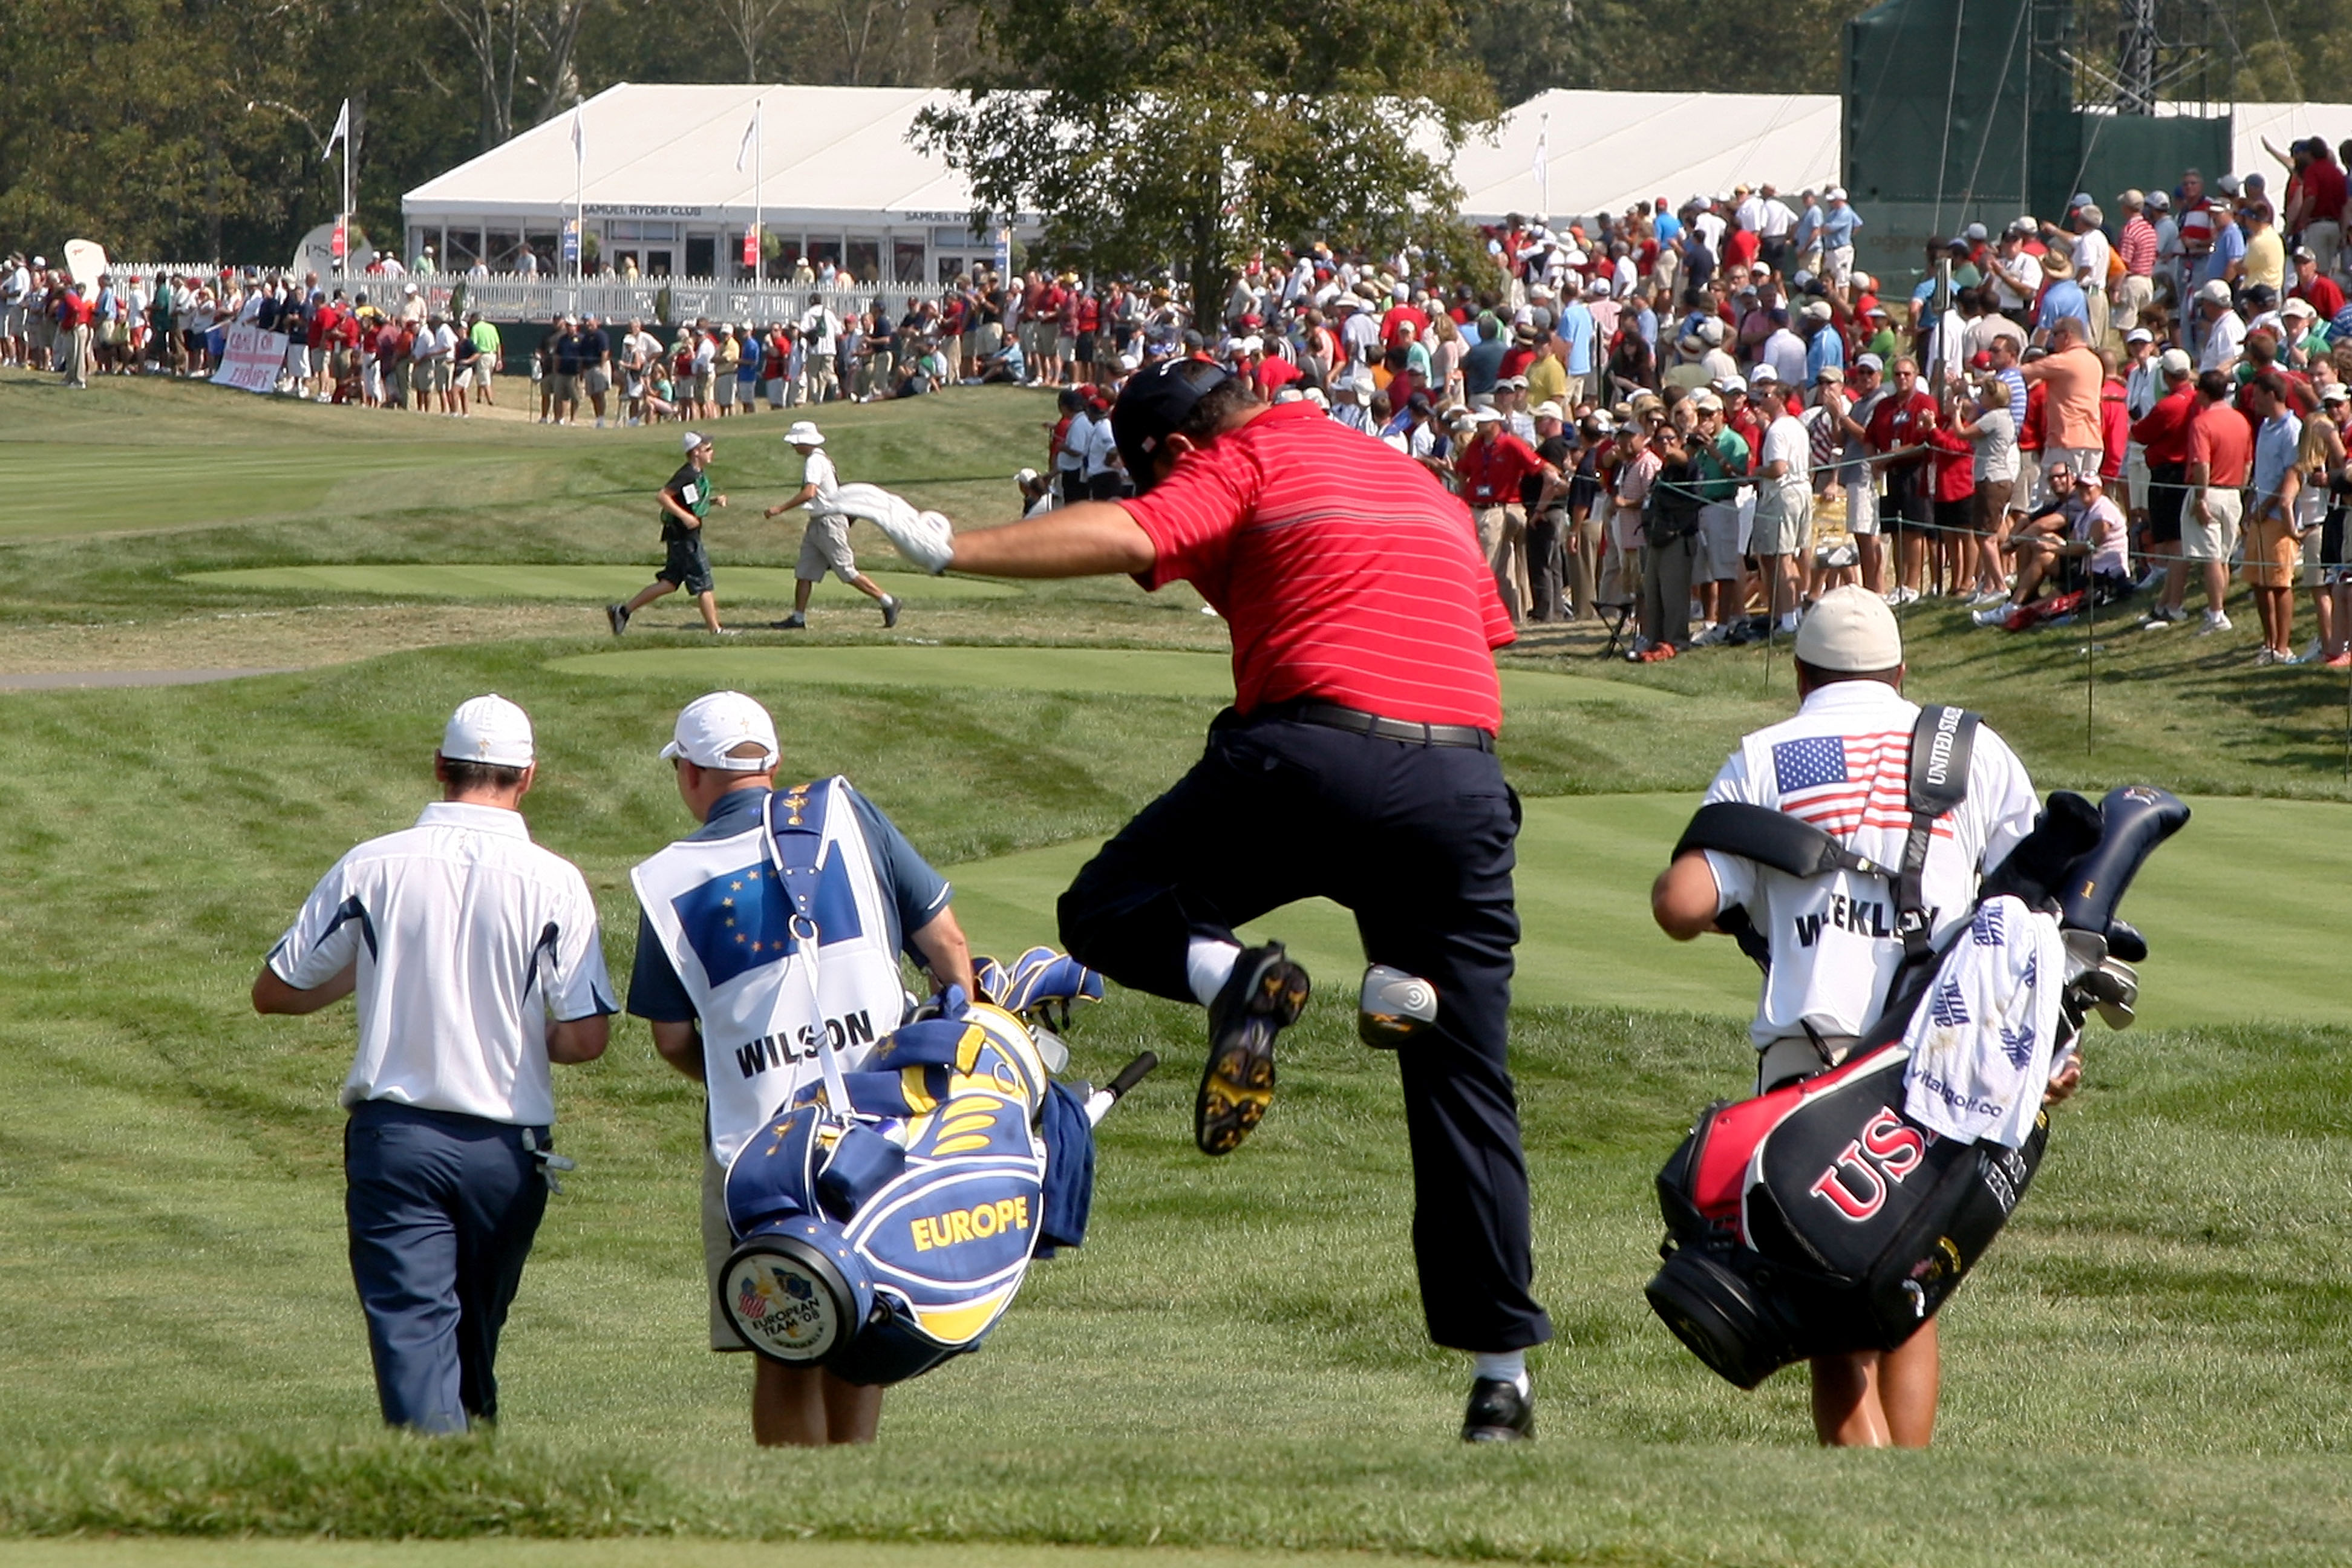 LOUISVILLE, KY - SEPTEMBER 21:  Boo Weekley of the USA team clowns around as he walks off the first tee during the singles matches on the final day of the 2008 Ryder Cup at Valhalla Golf Club on September 21, 2008 in Louisville, Kentucky.  (Photo by David